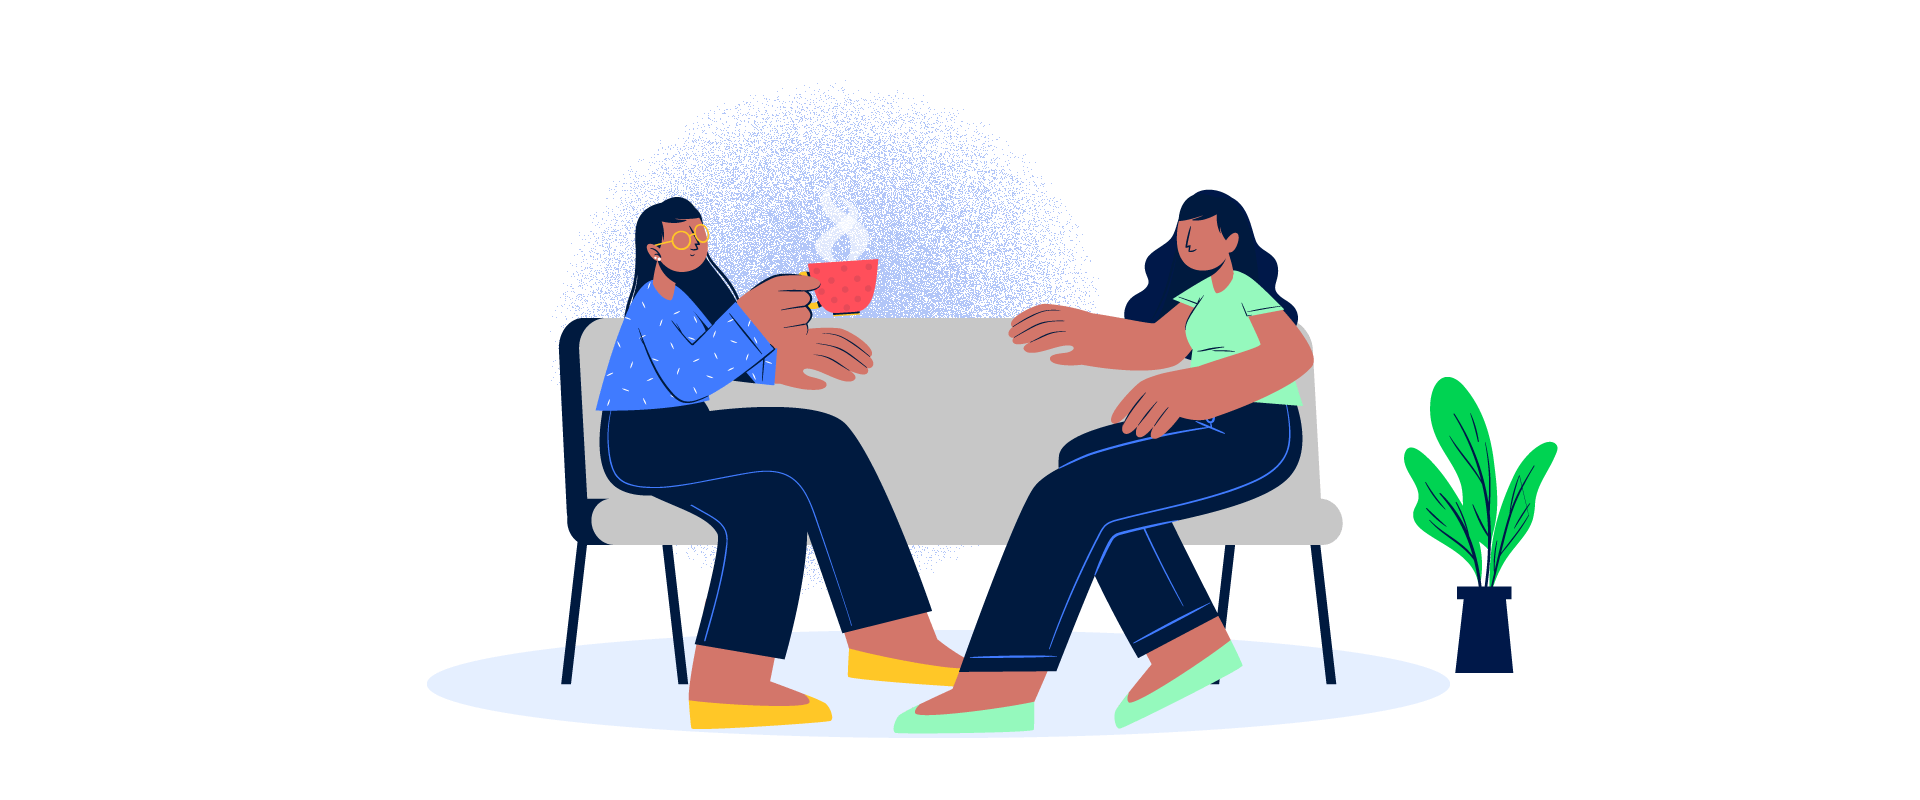 If you feel overwhelmed at work, reach out and ask for help. Your manager can help you by getting you in touch with one or more of the right resources. Use the office grapevine and connect with counselors or other teammates who can help you out of your stress.